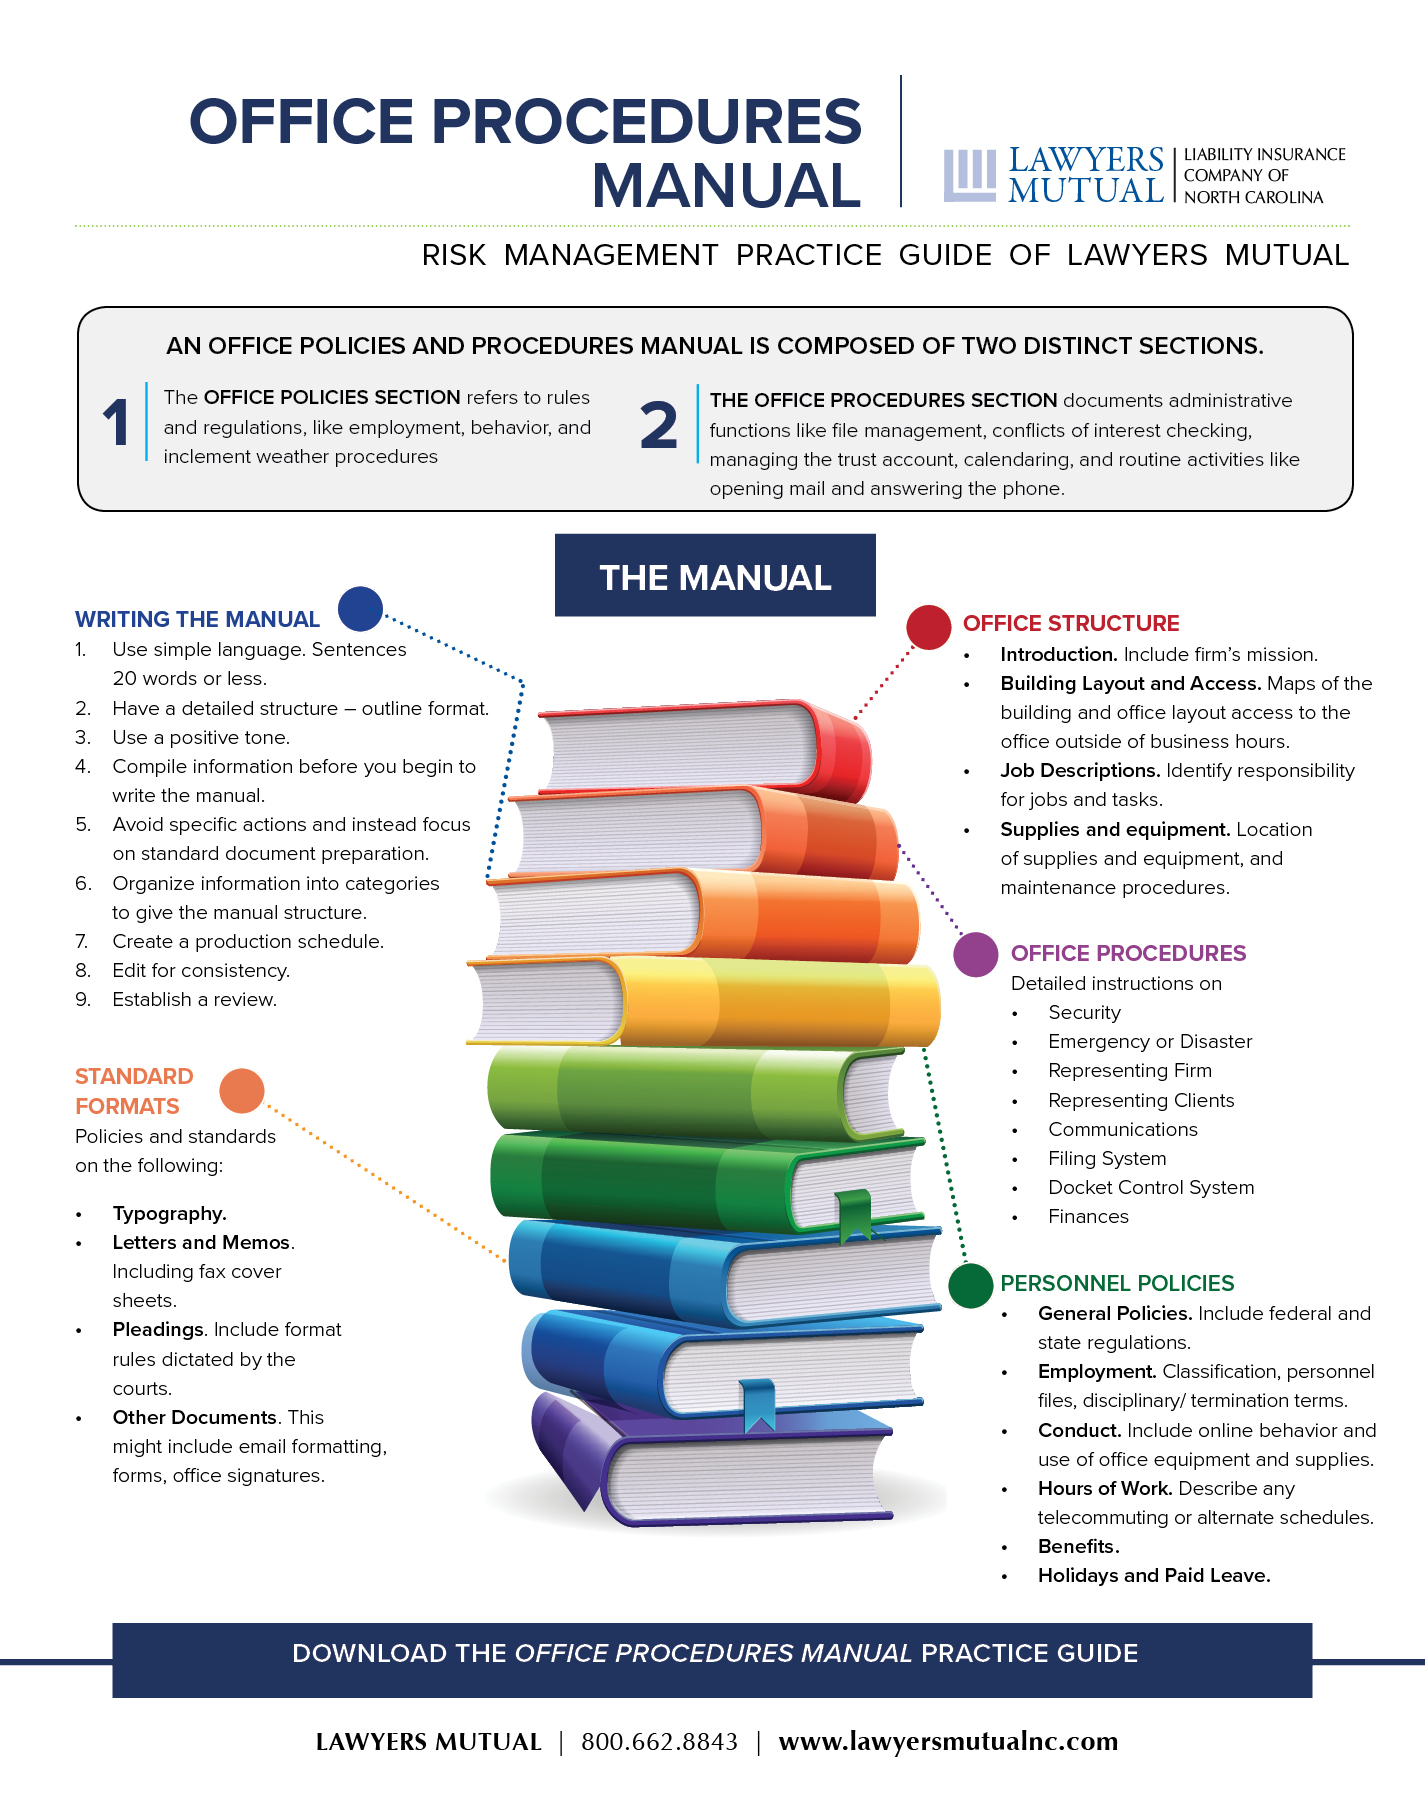 Infographic for Office Procedures Manual